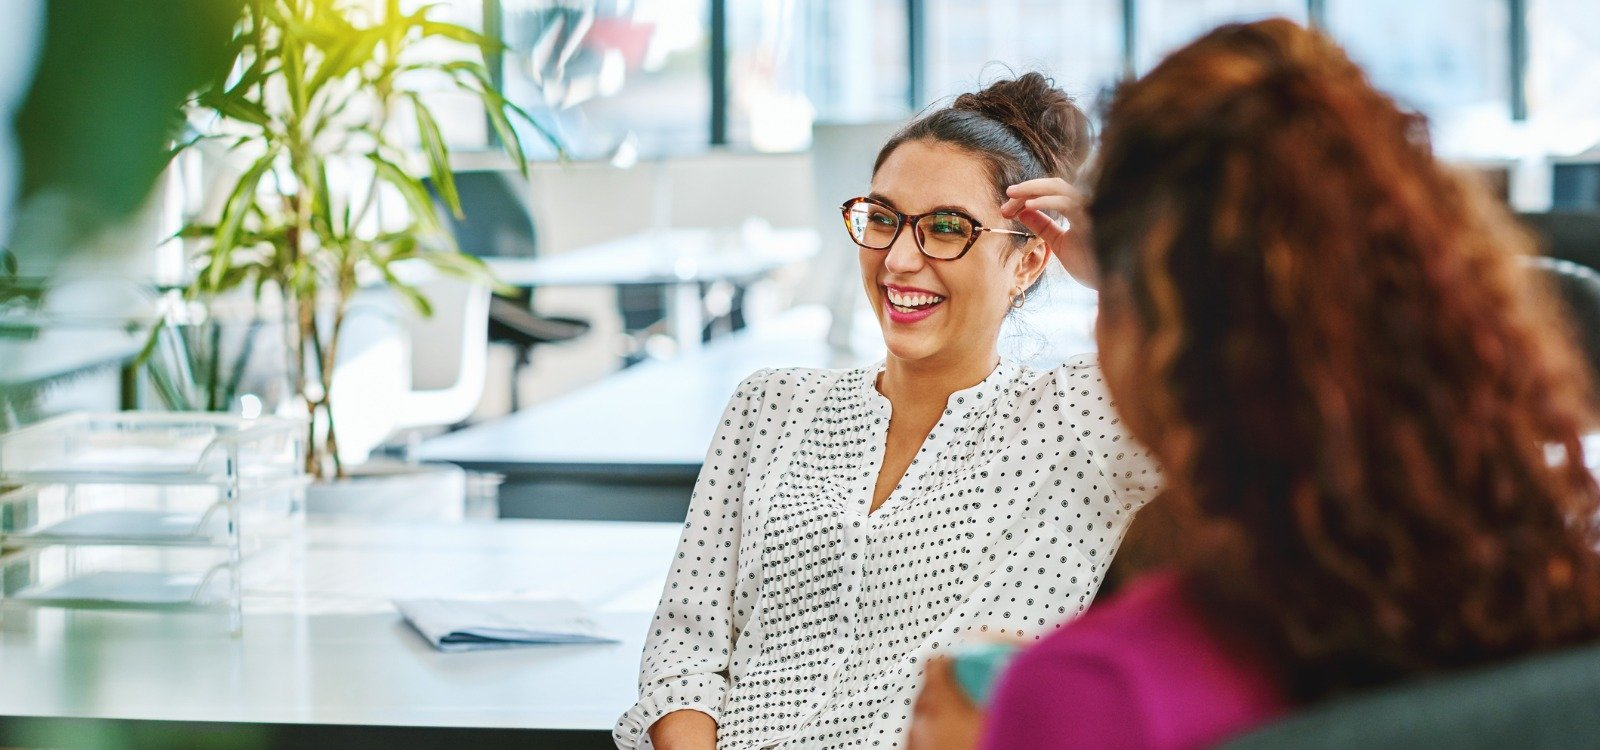 office colleagues talking and smiling | on-demand pay model